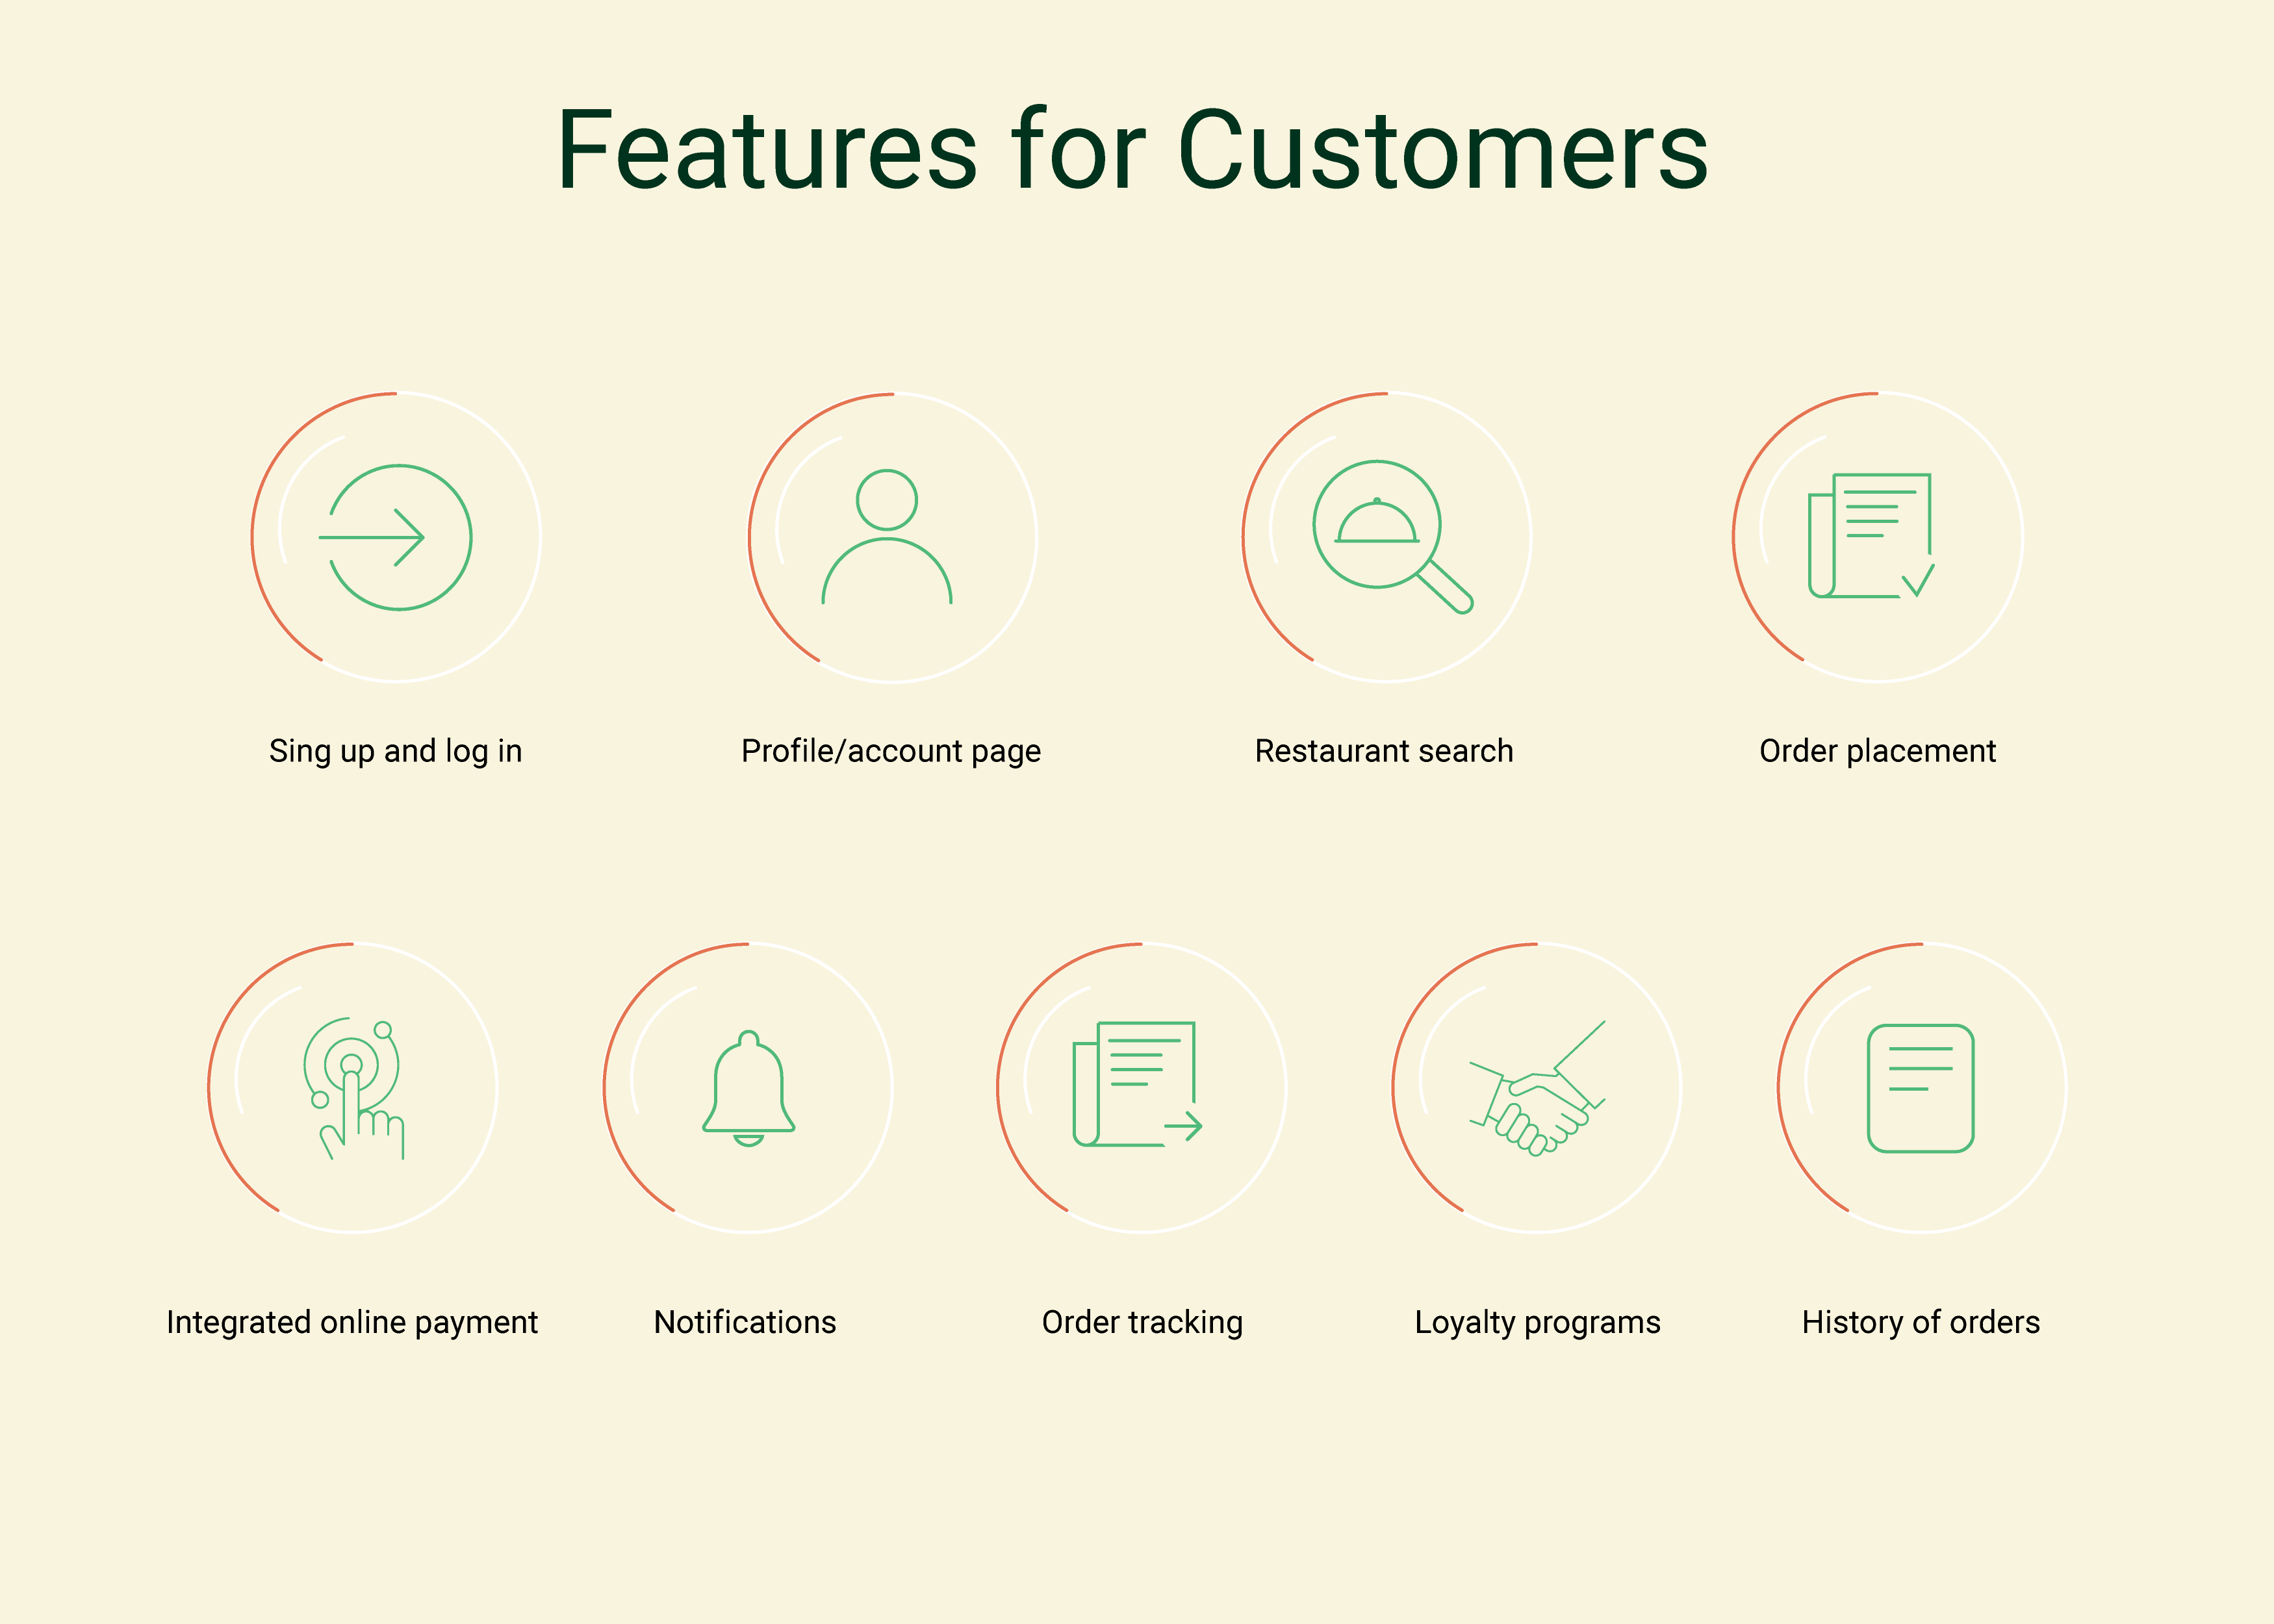 How to Build a Delivery App for Customers